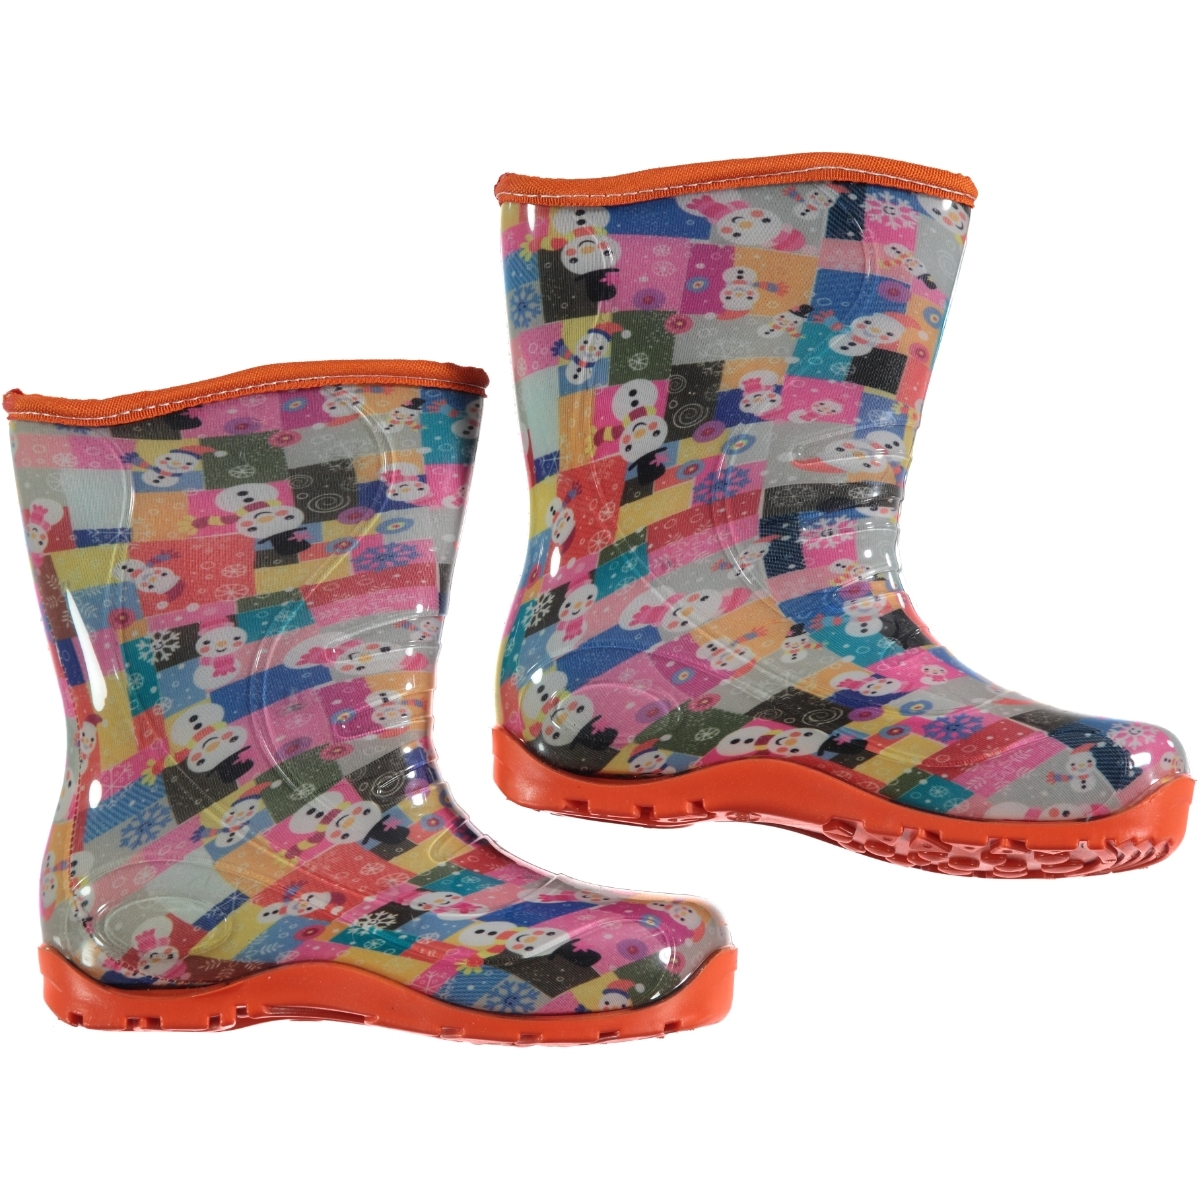 Civil The Girl The Boy The Snowman Patterned Orange Boots Number 30-35